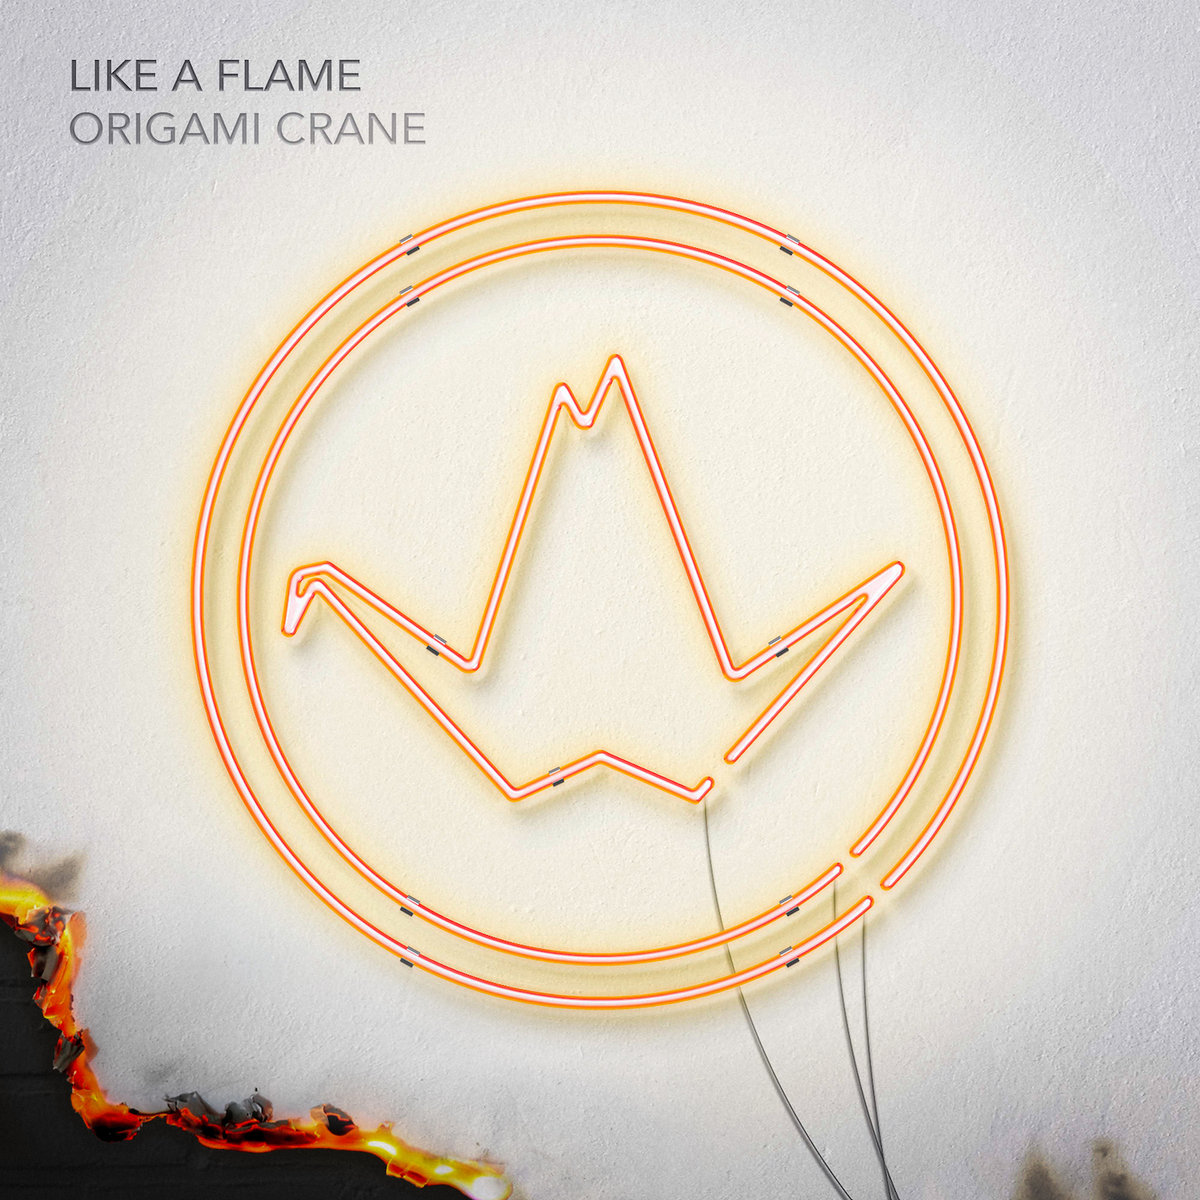 Like a Flame by Origami Crane